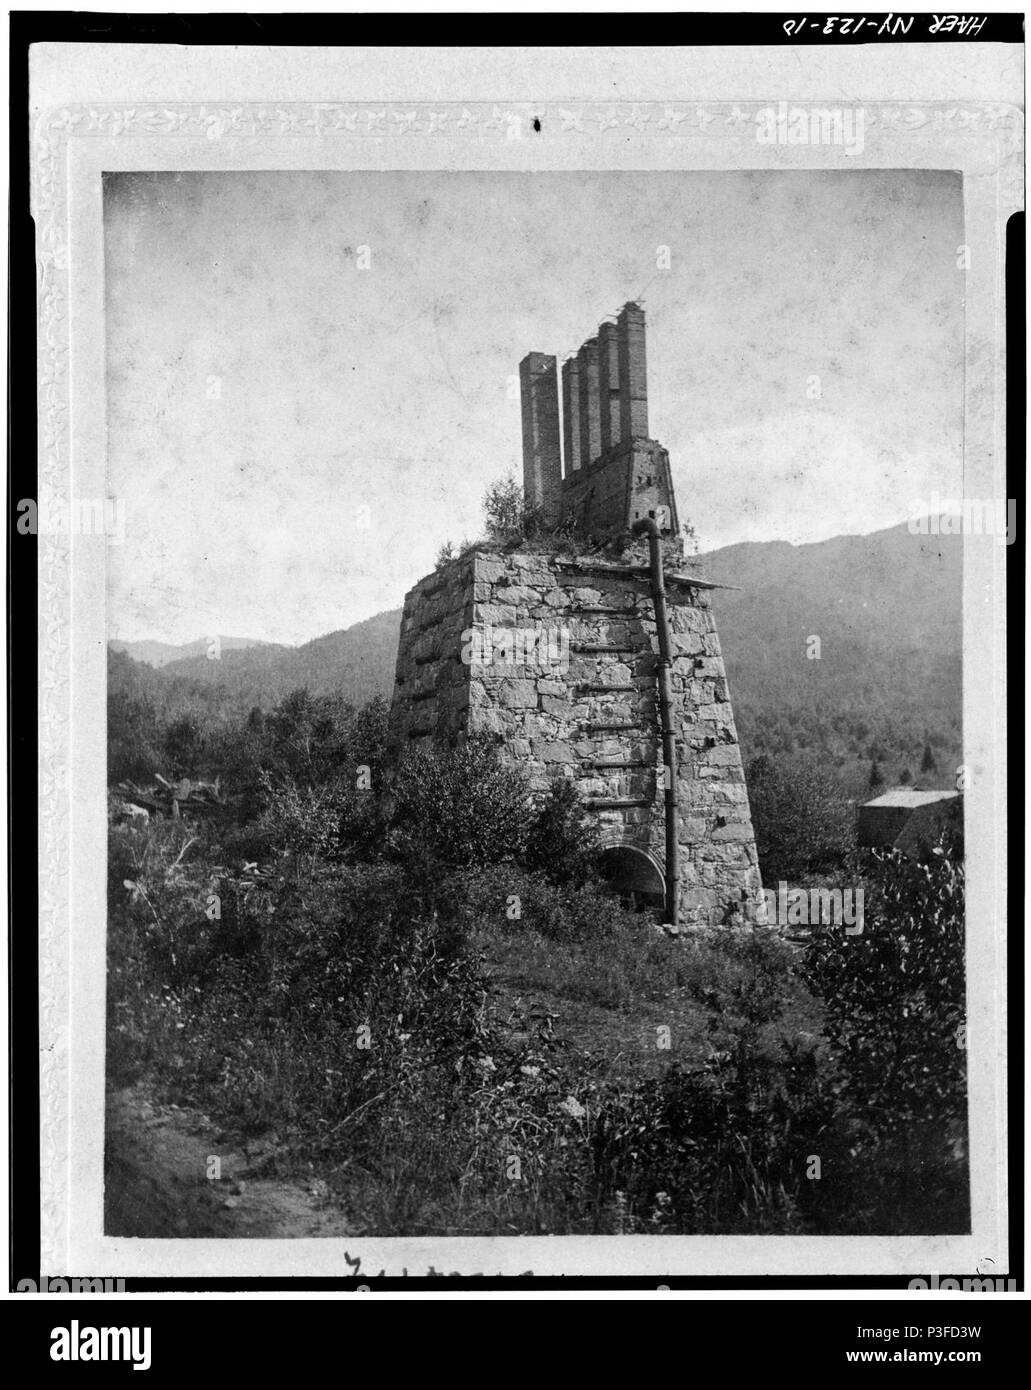 10. Photocopied June 1978. STACK AT THE 'NEW'FURNACE, CA. 1900. SOURCE UNKNOWN. OBTAINED FROM TAHAWUS CLUB. - Adirondac - LOC - hhh.ny0915.photos.116615p. - Stock Image